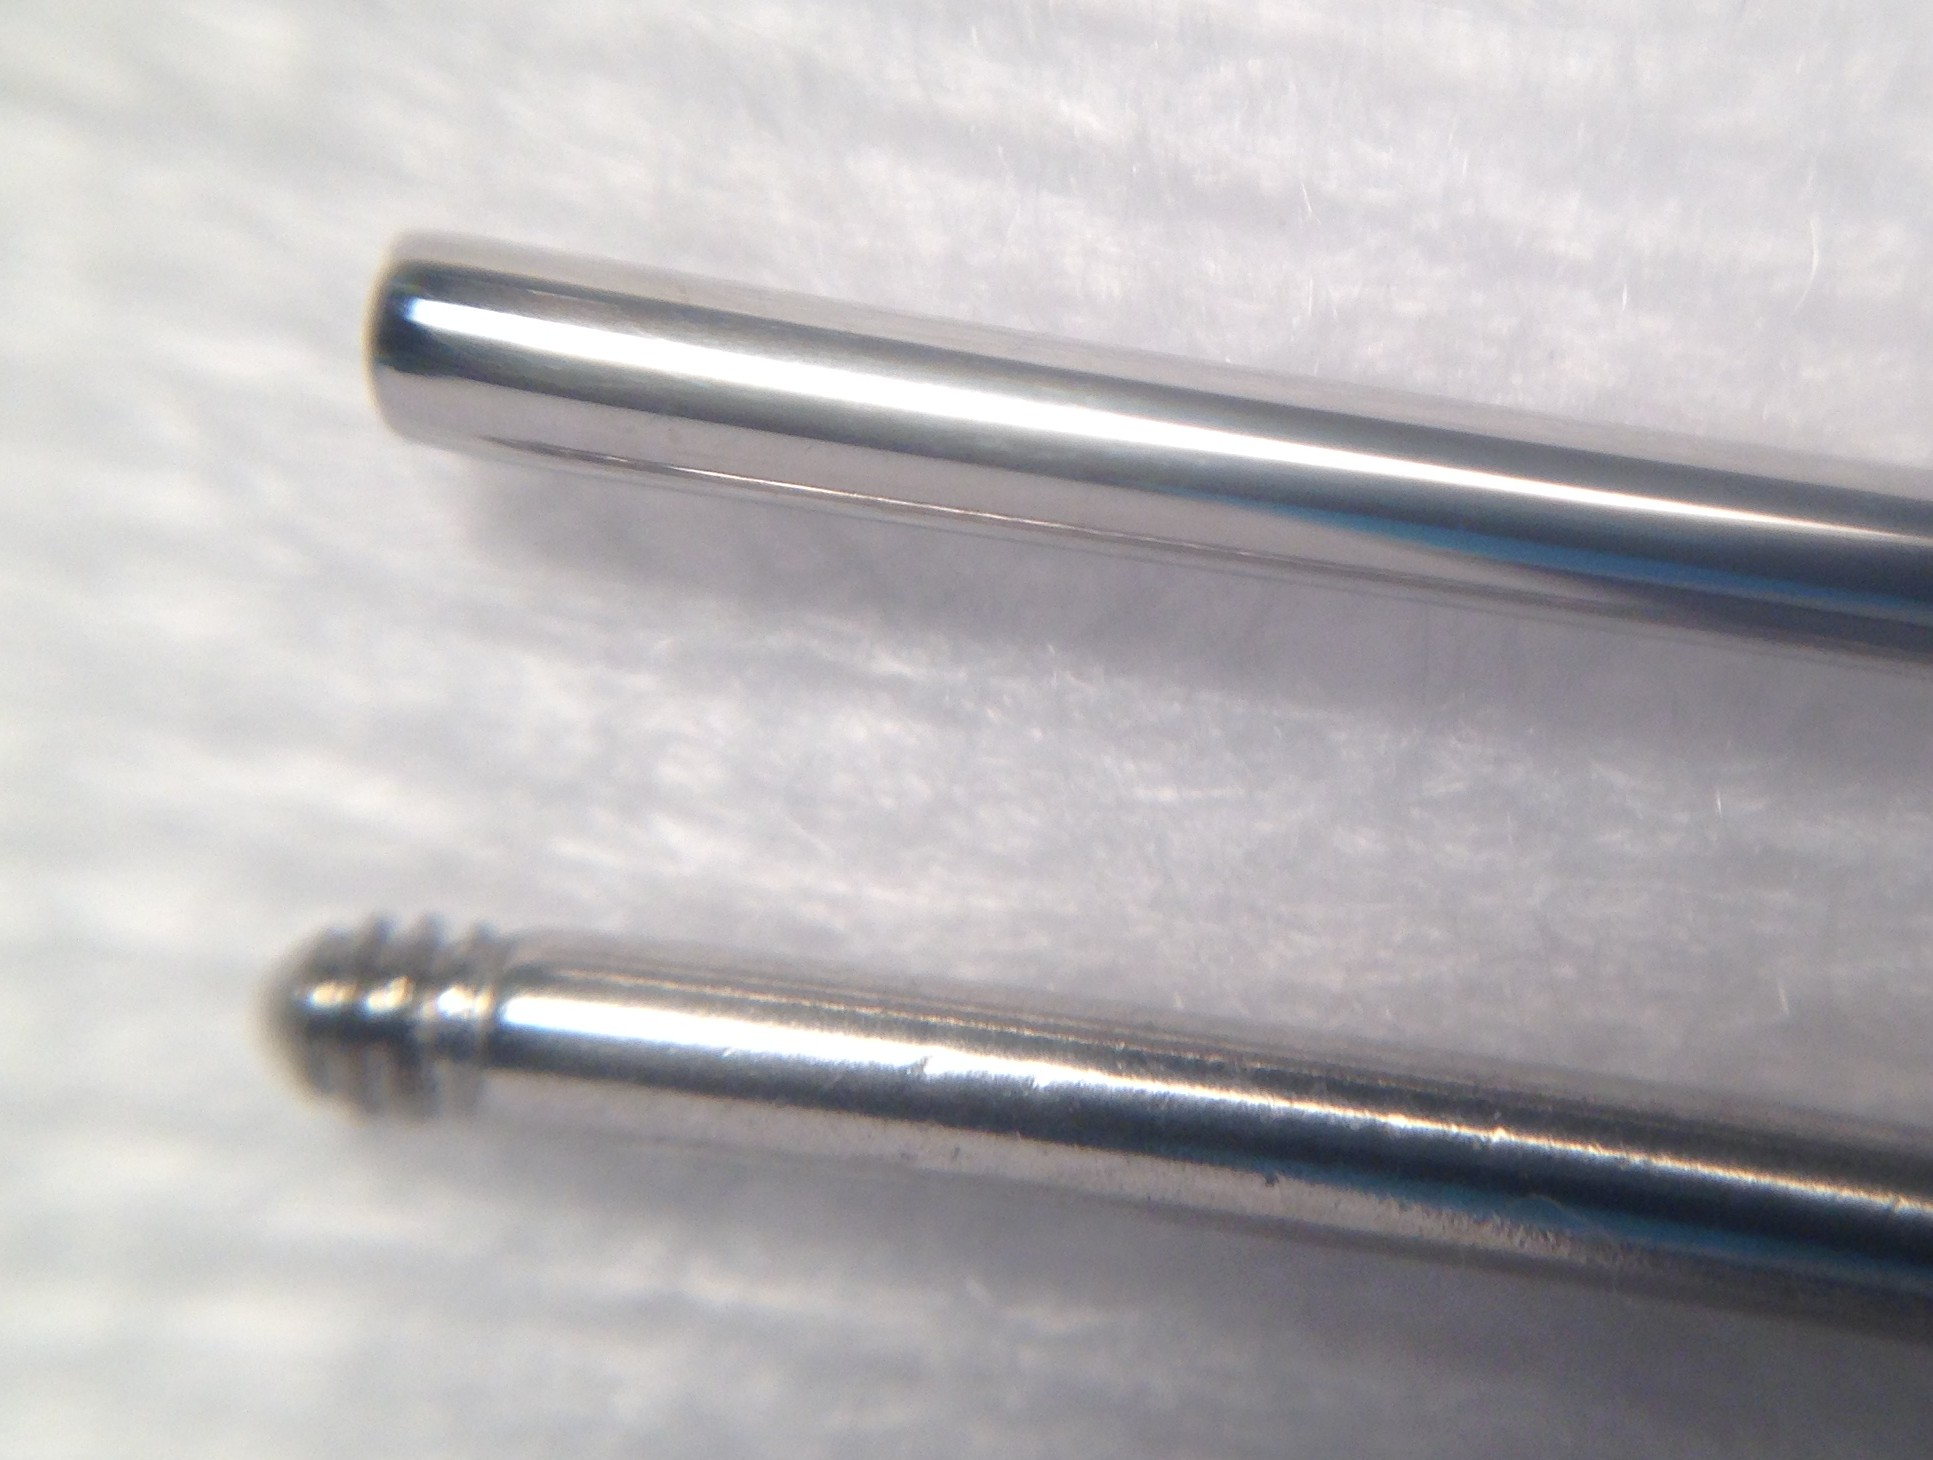 Macro Photo Of An Strength Internally Threaded Barbell Top And Externally Bottom You Can See The Uneven Surfaces On